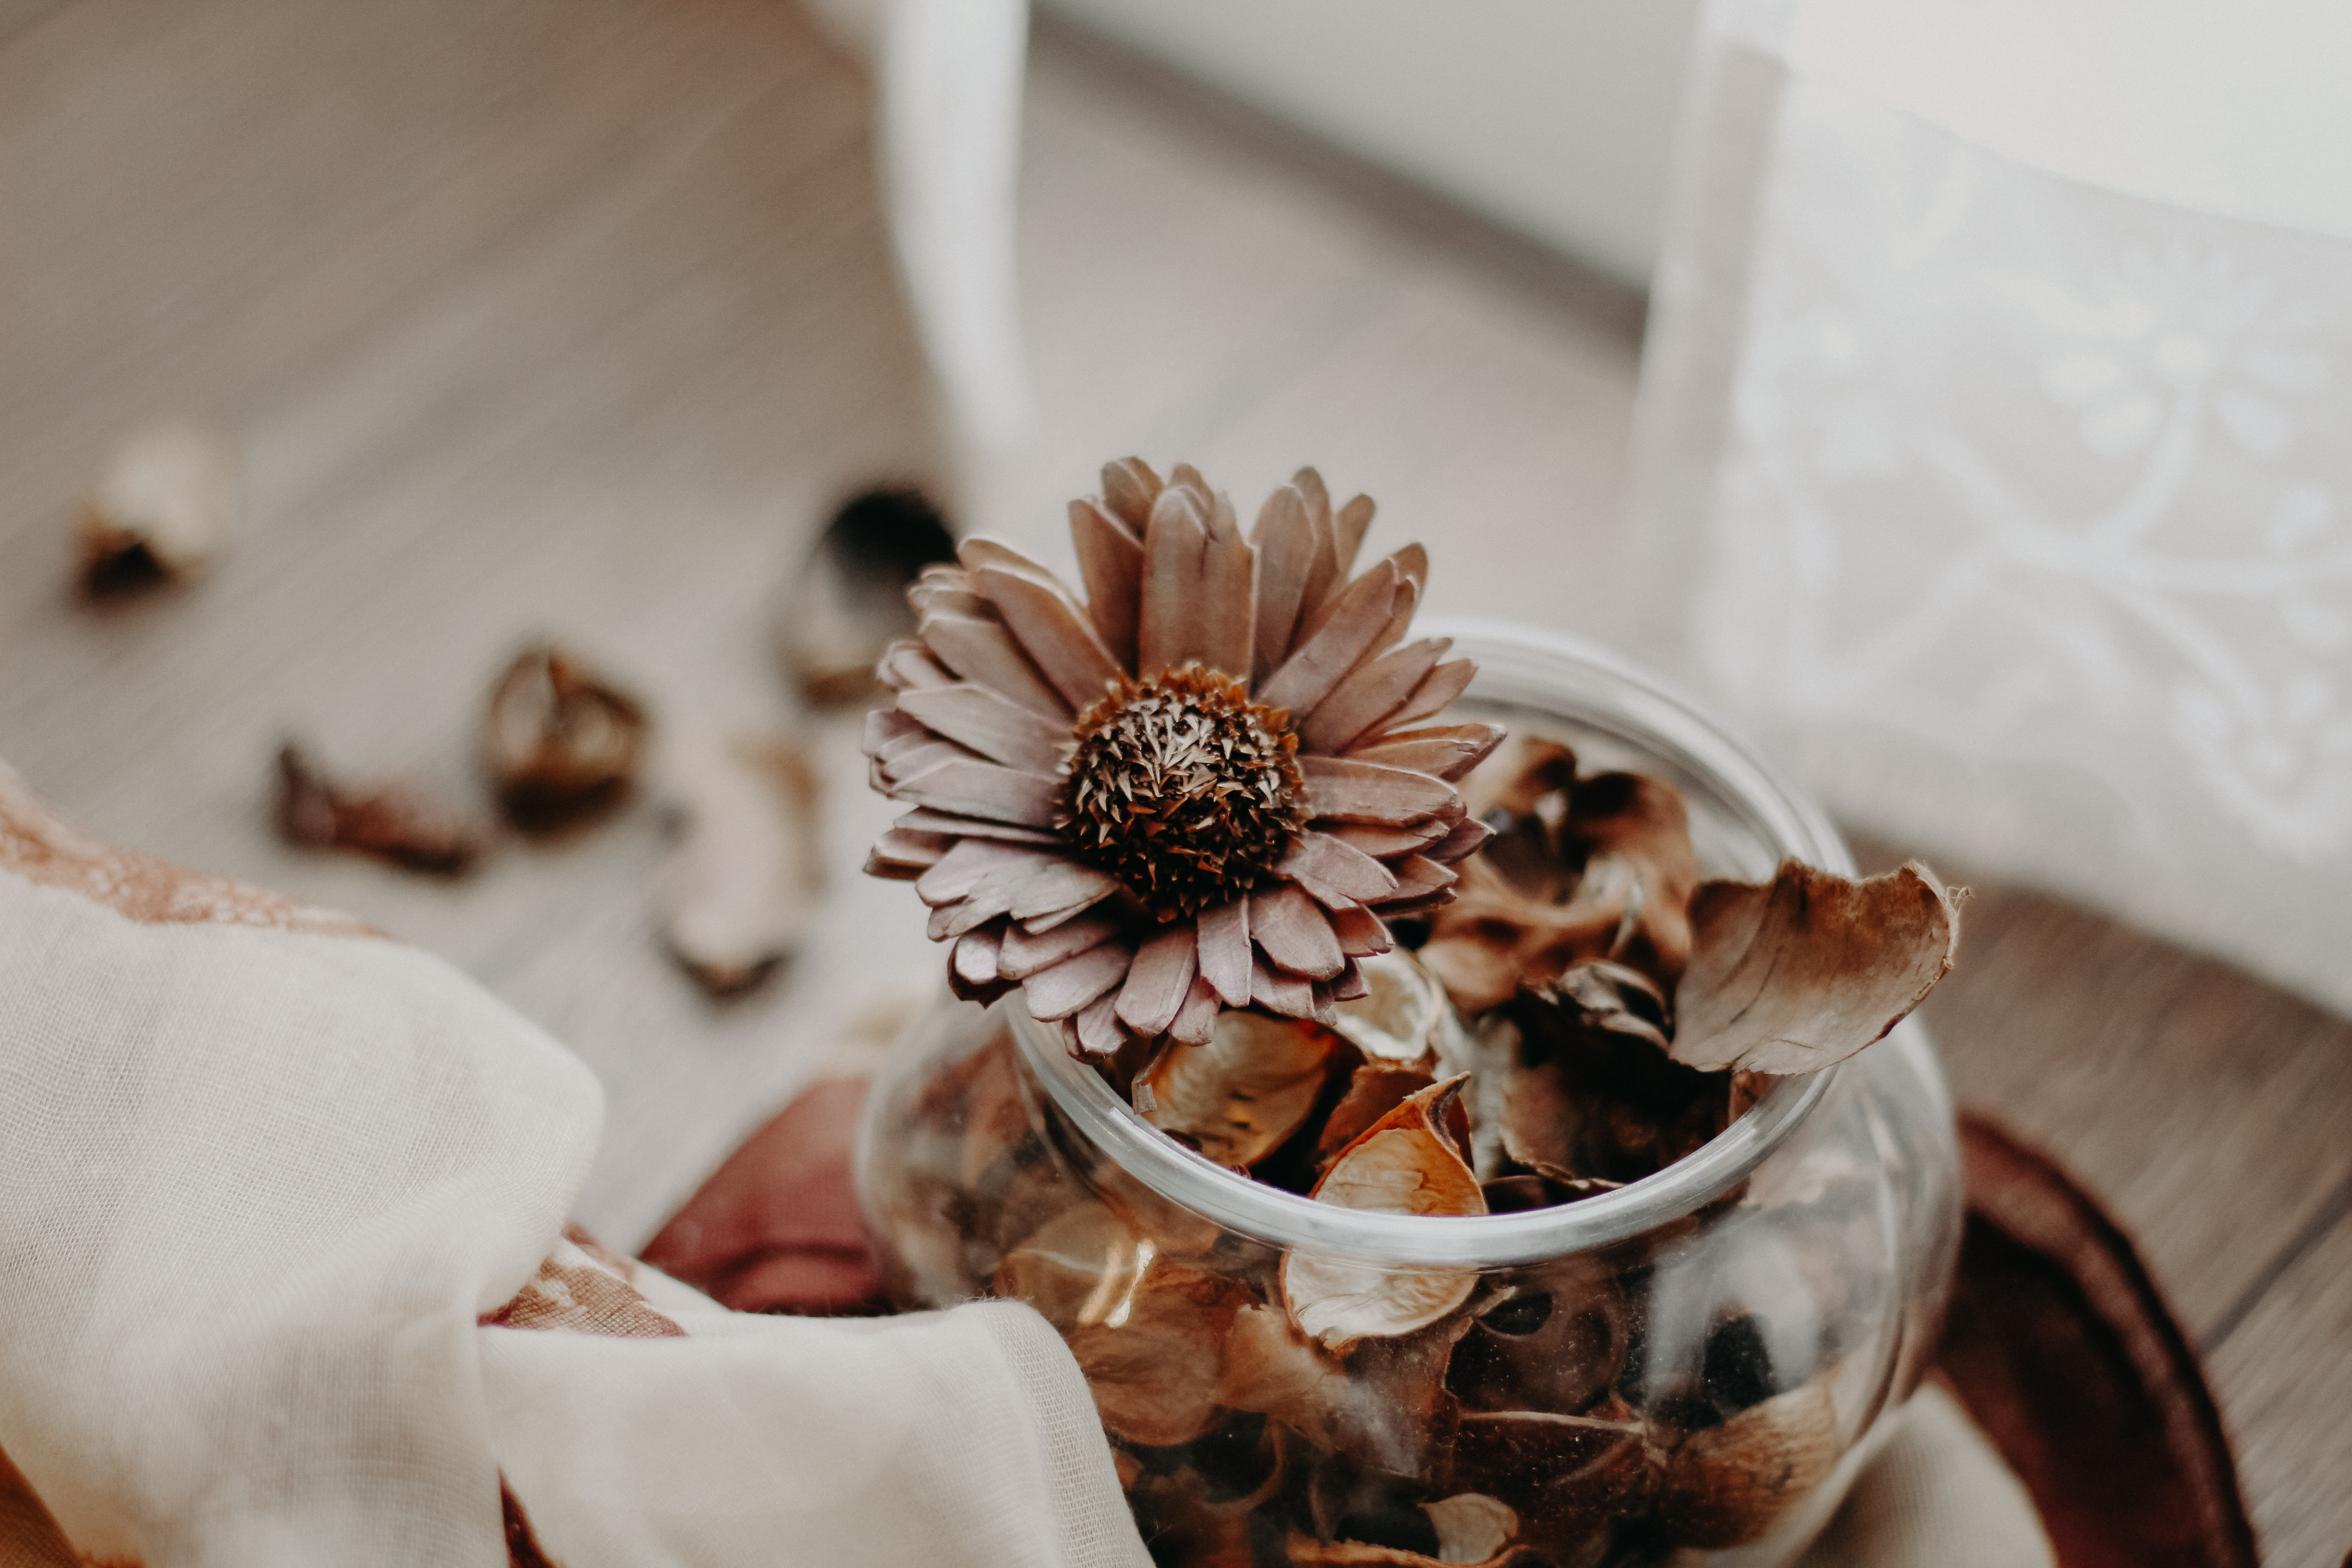 brown petaled flowers in vase inside room at daytime